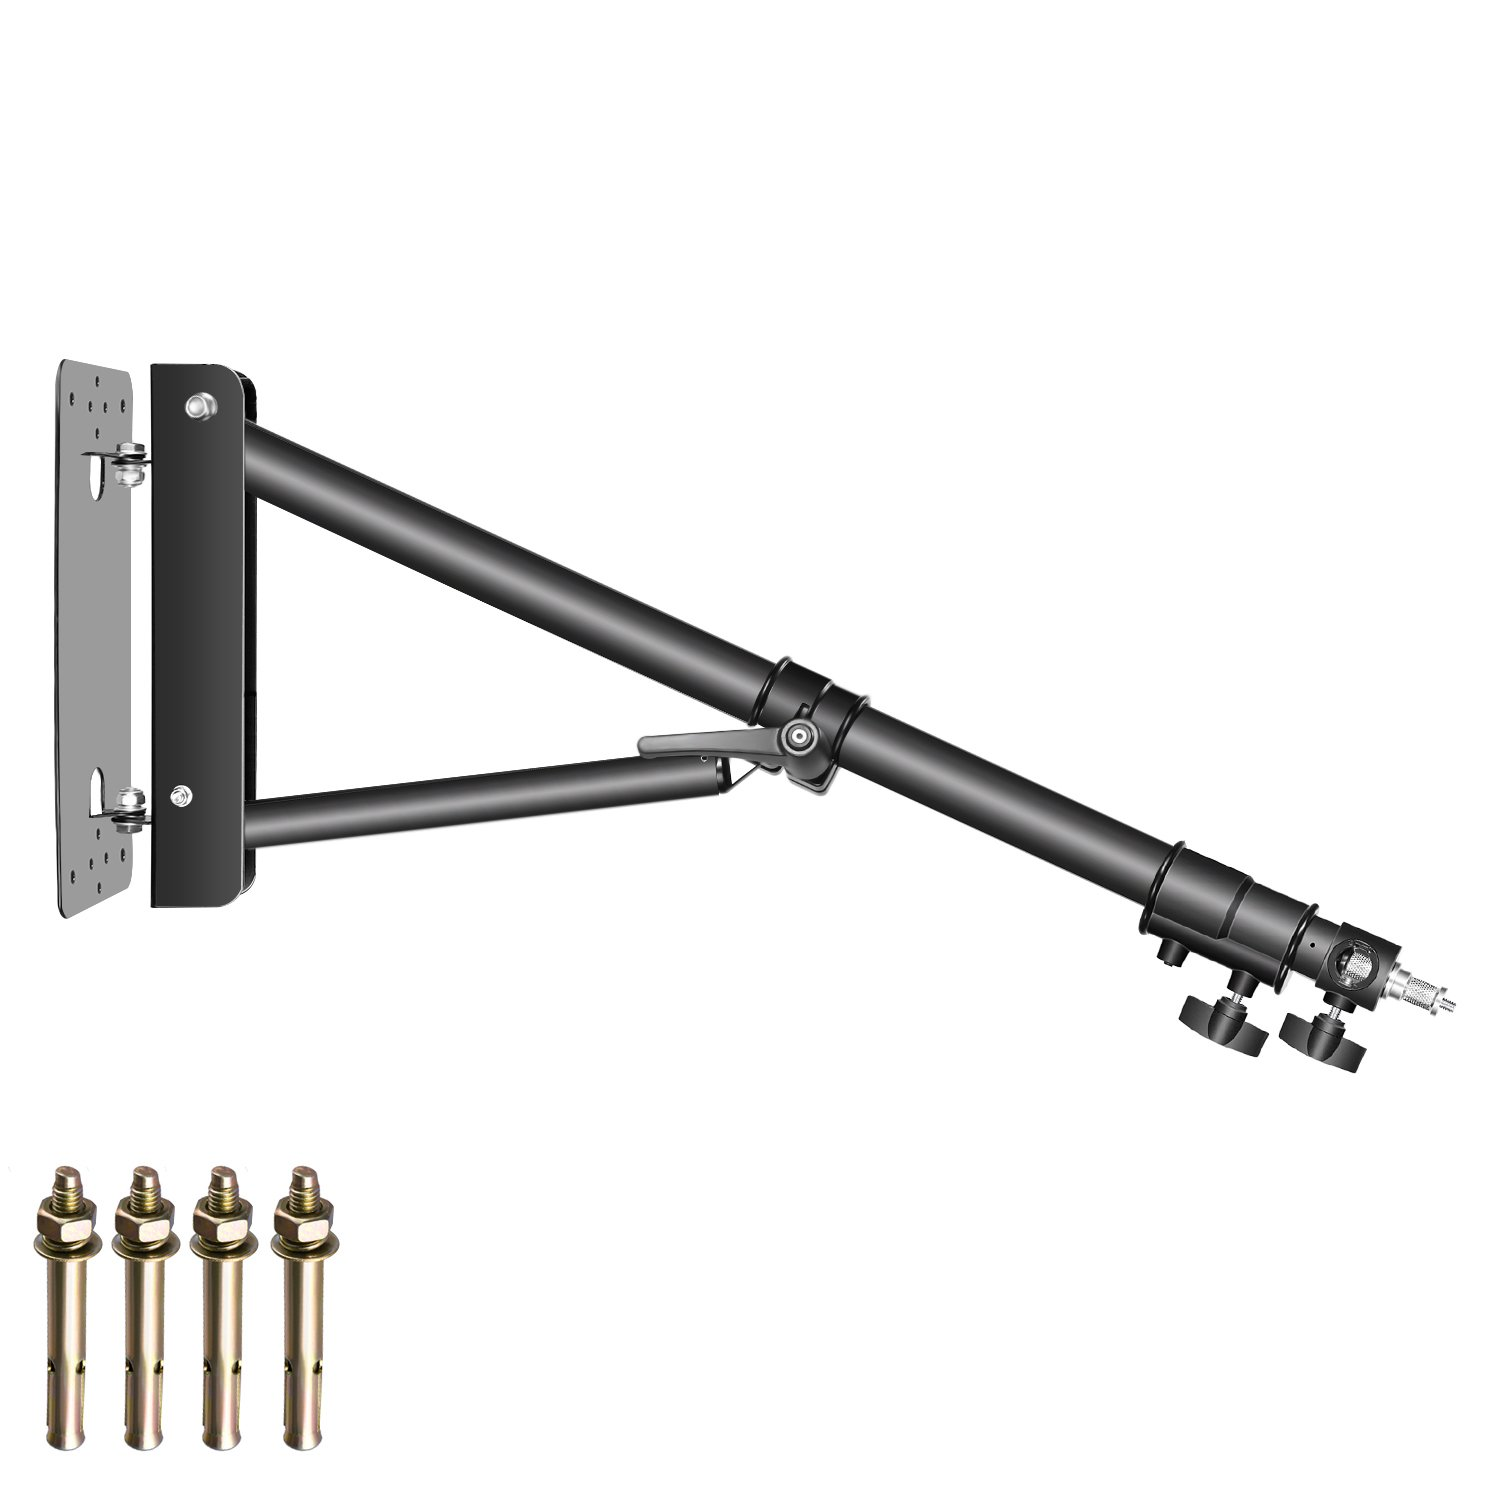 Neewer Triangle Wall Mounting Boom Arm for Photography Studio Video Strobe Lights Monolights Softboxes Umbrellas Reflectors,180 Degree Flexible Rotation,Max Length 51.1 inches/130 centimeters (Black) by Neewer